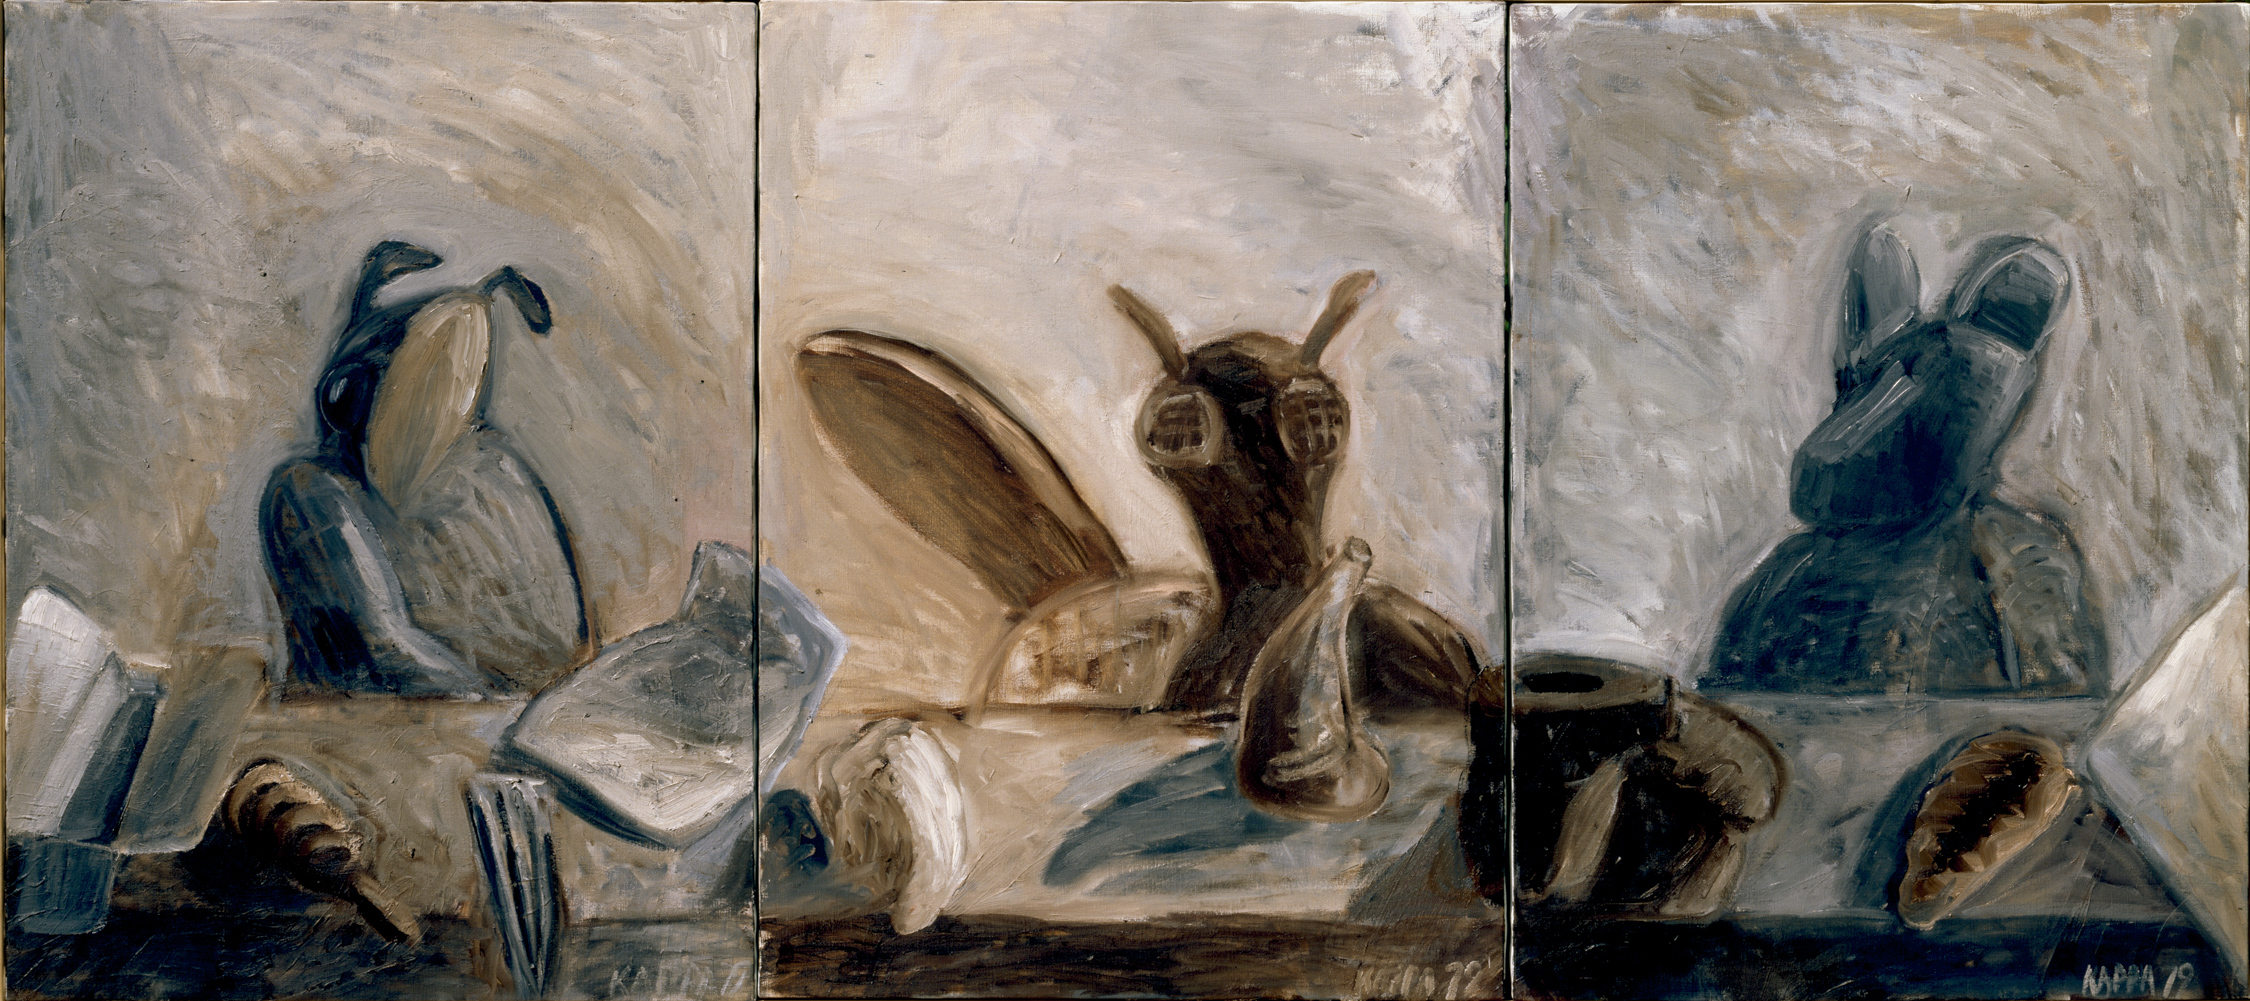 Gesellschaft , 1979, Oil on canvas, 31.49h x 70.86w (80h x 180w cm in three parts), Morat-Institute, Freiburg in Breisgau